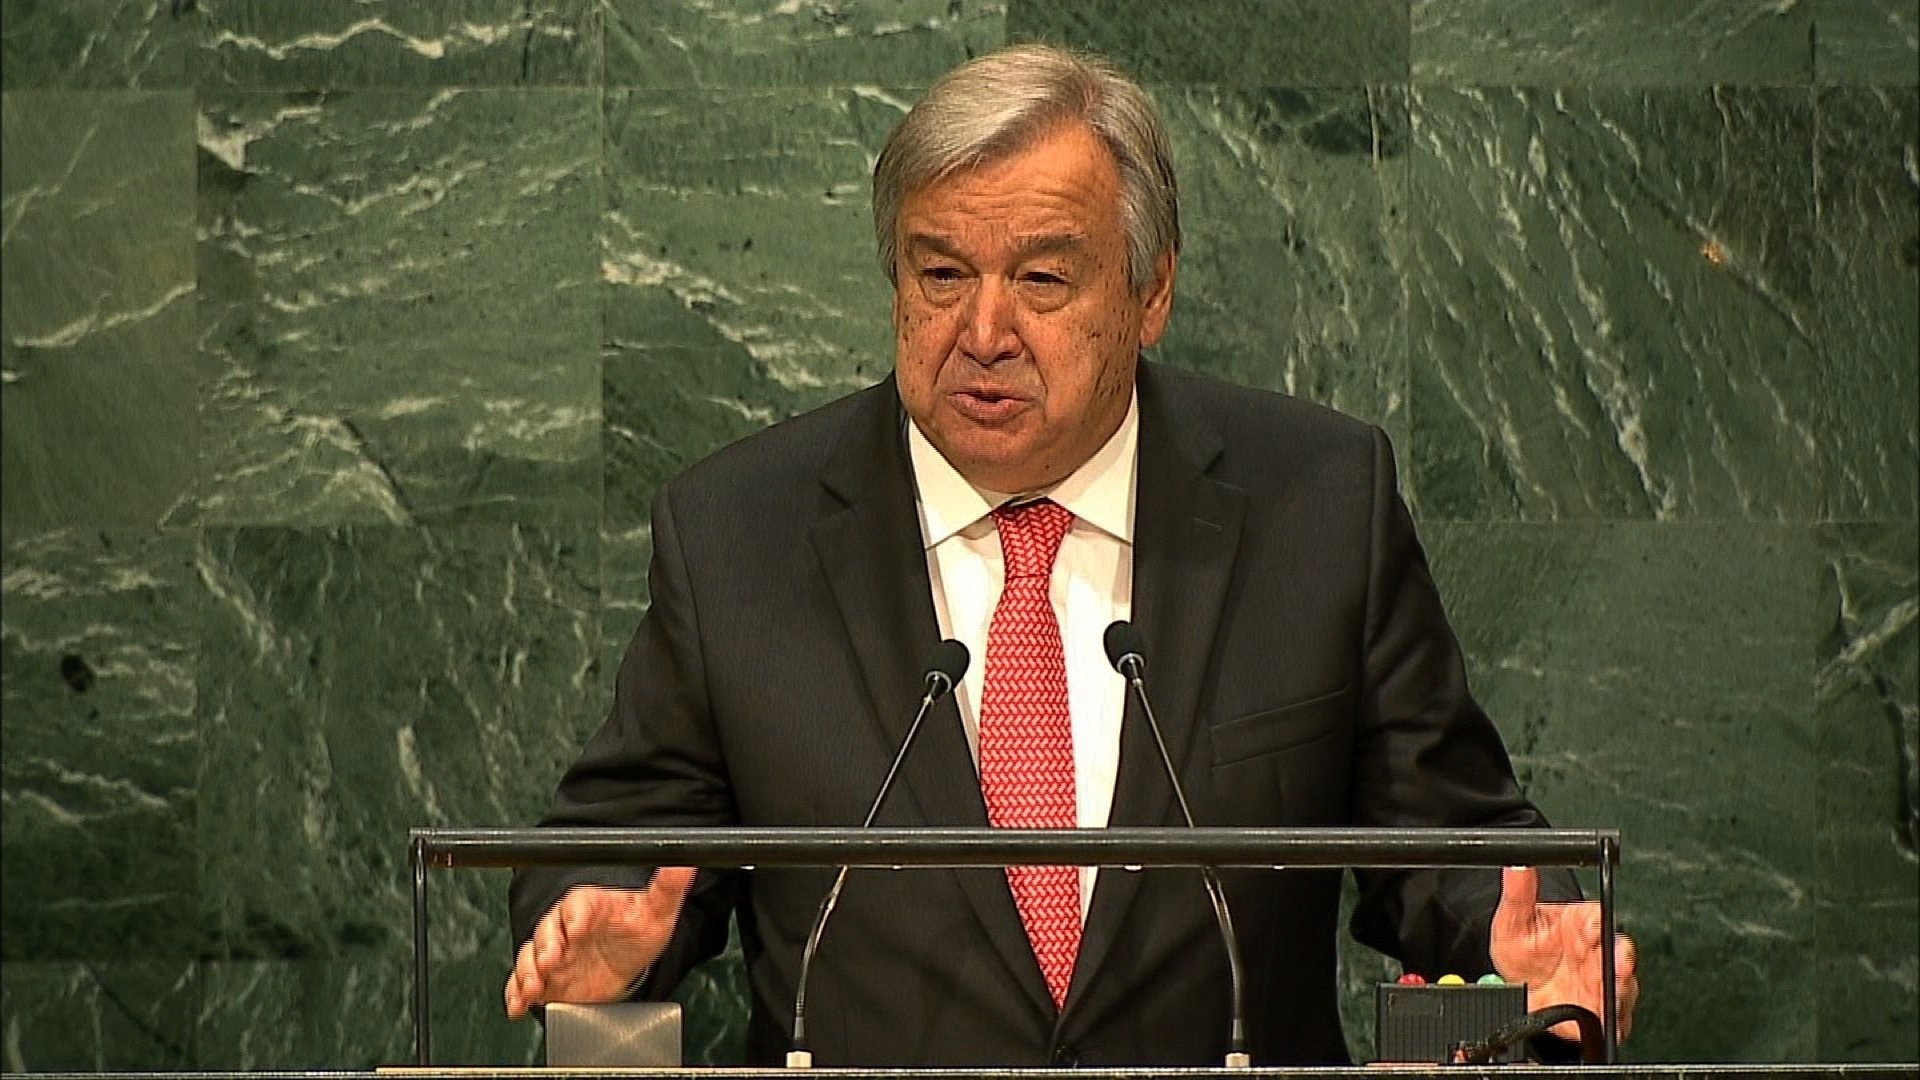 The United Nations General Assembly on Thursday formally approved former Portuguese Prime Minister Antonio Guterres to be the next secretary-general. The 193-member assembly approved Guterres by acclamation a week after the Security Council gave its...